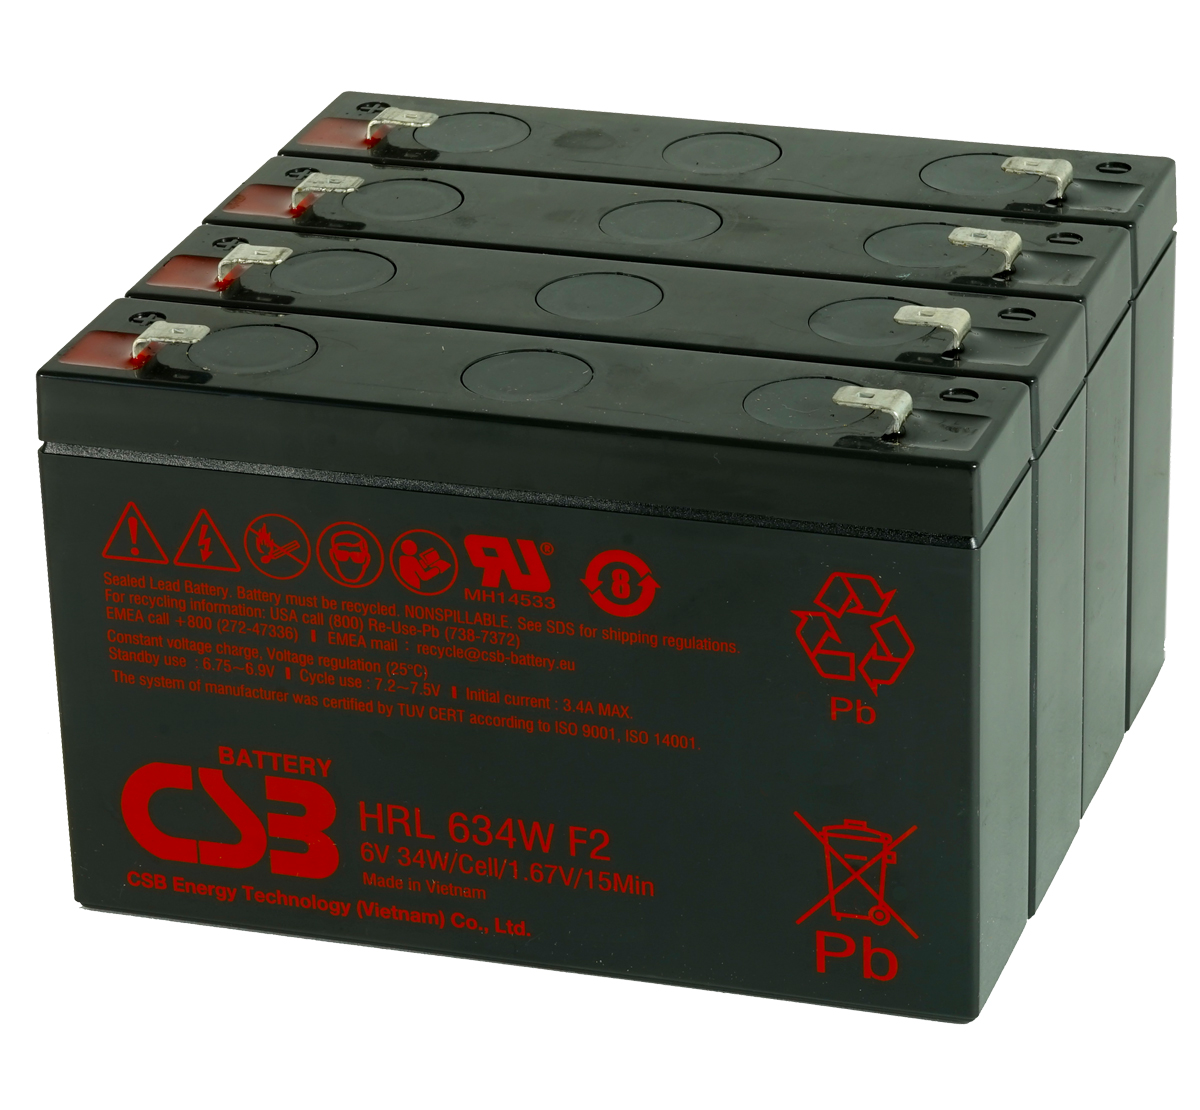 CSB HRL634W F2 VRLA Pack of 4 Batteries